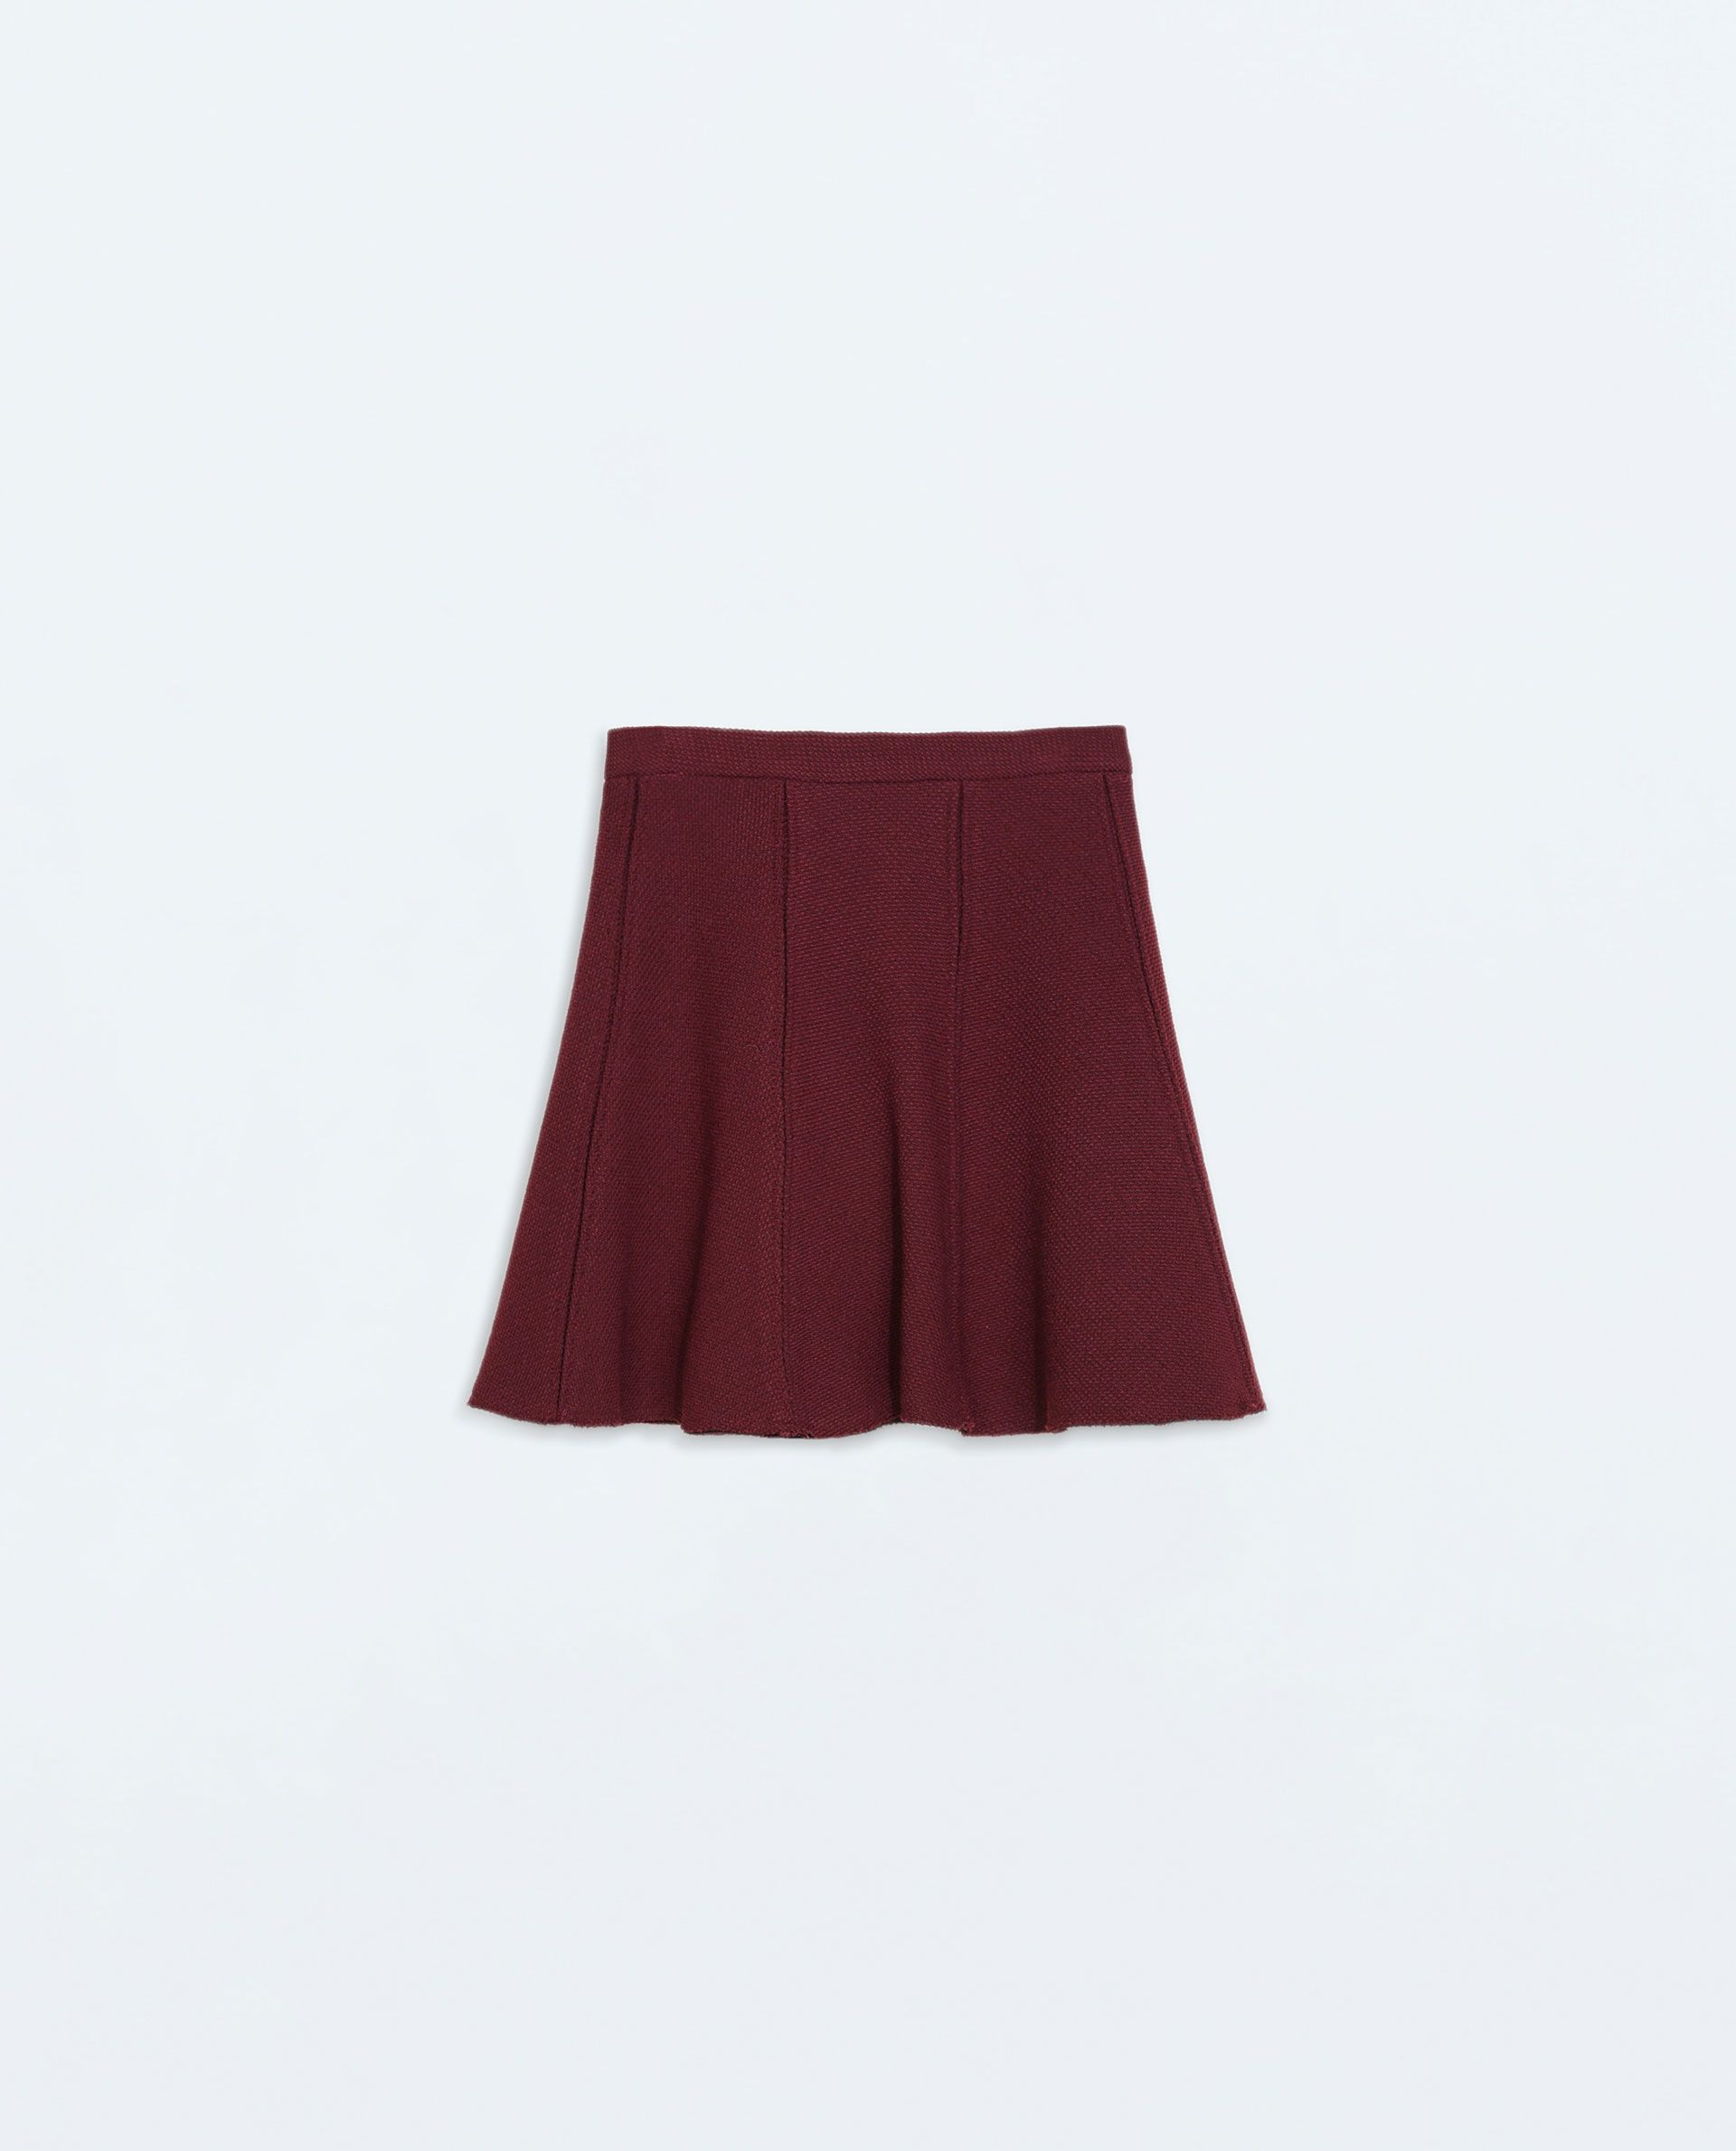 Image 5 Of Pleated Mini Skirt From Zara With Images Pleated Mini Skirt Womens Skirt Skirts